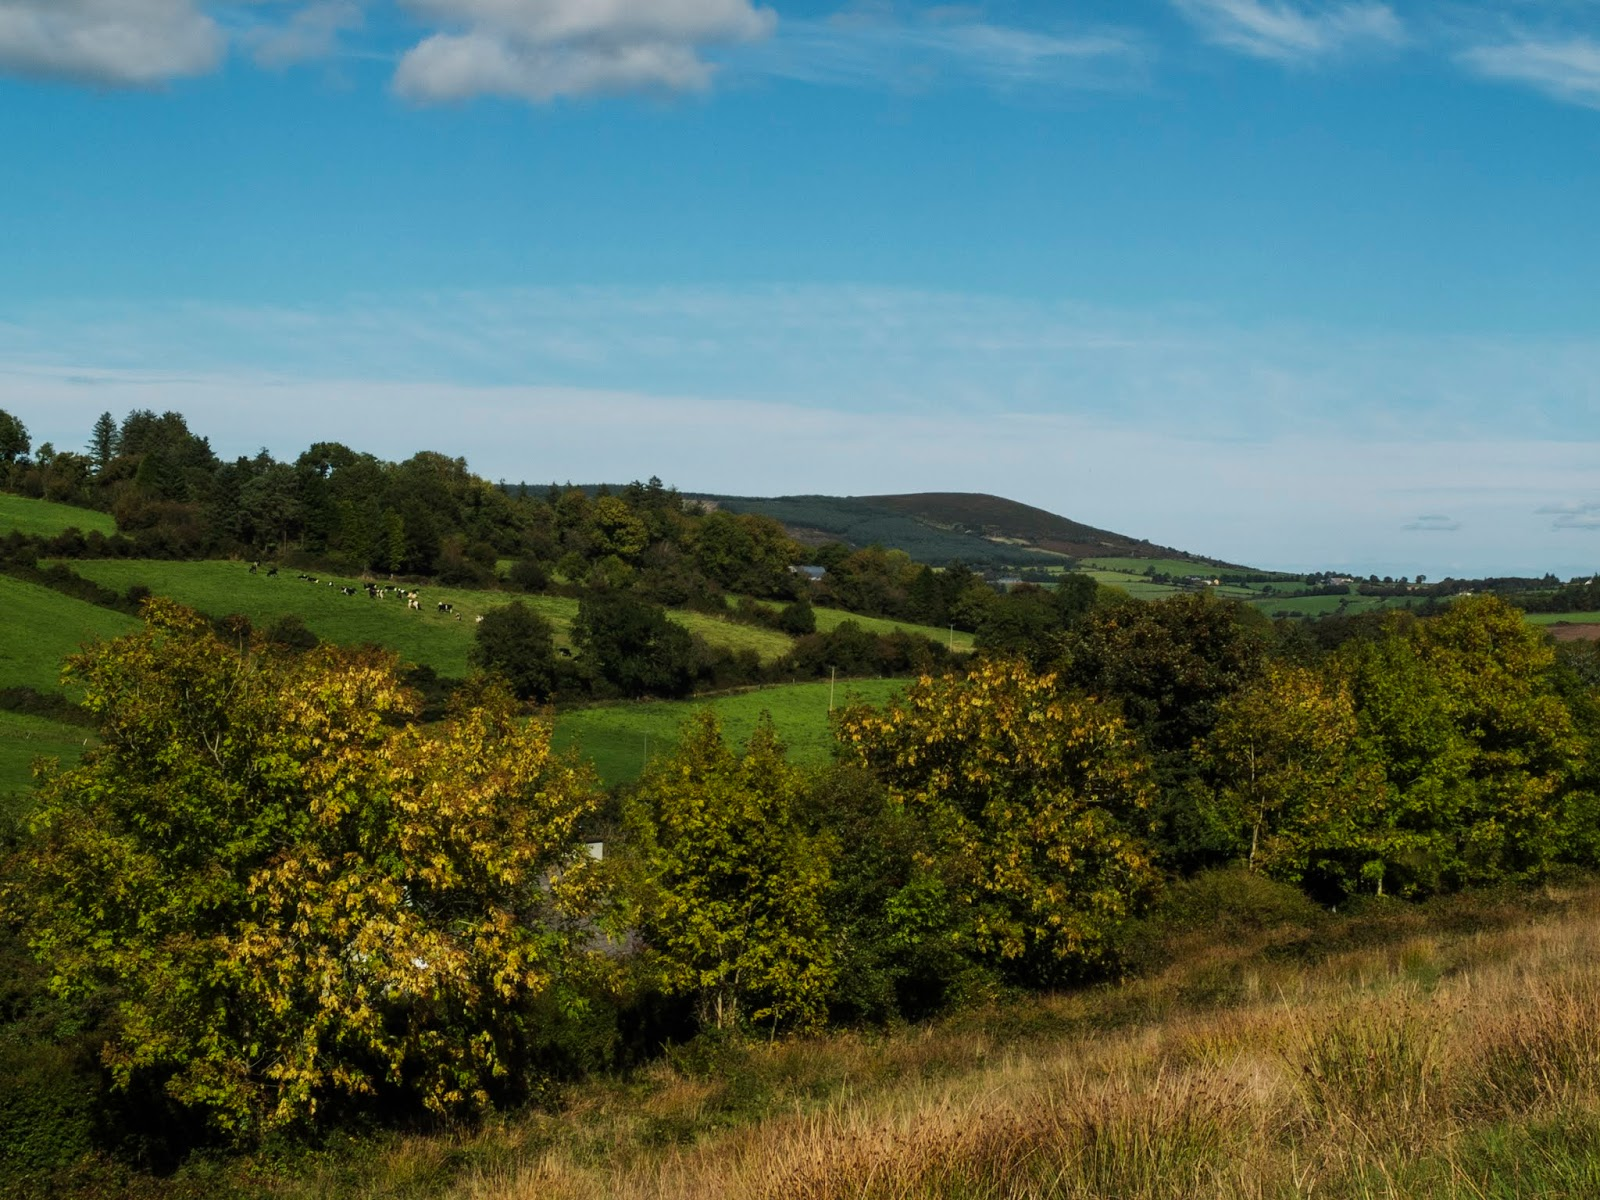 Mountain side views on a sunny day in the Boggeragh Mountains, Co.Cork